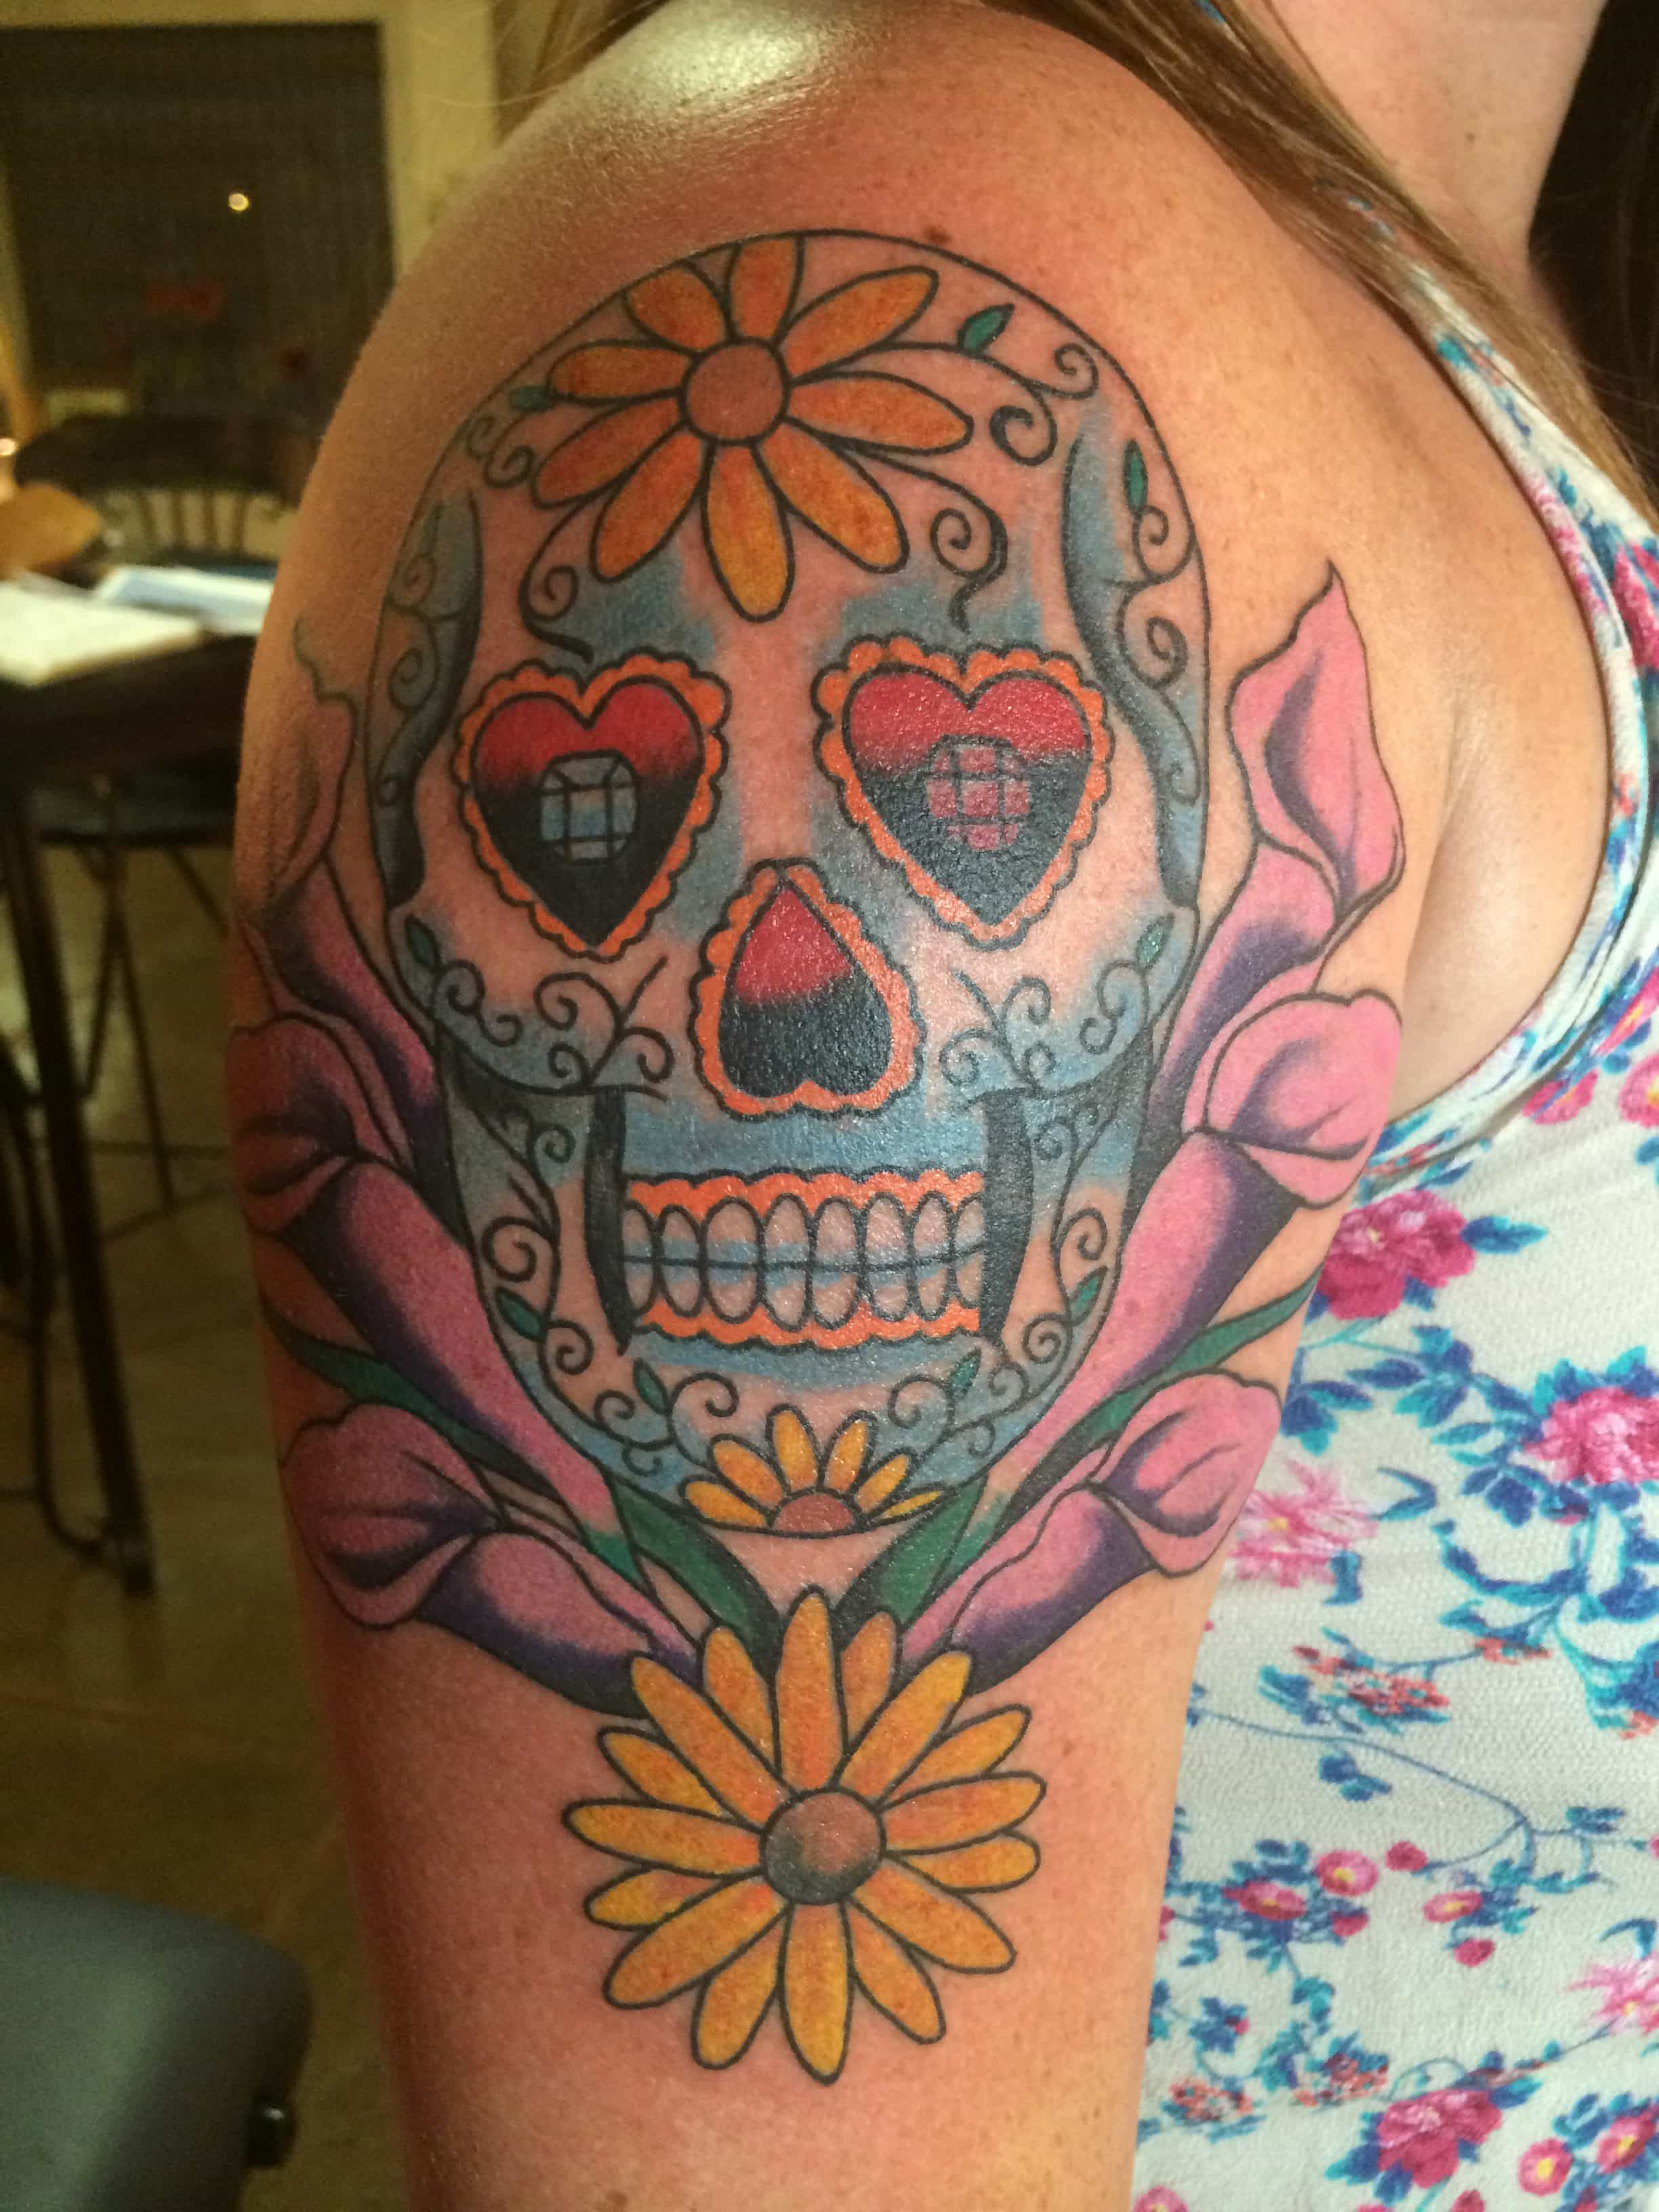 Traditional tattoo florida, sugar skull tattoo, sugar skull tattoo florida